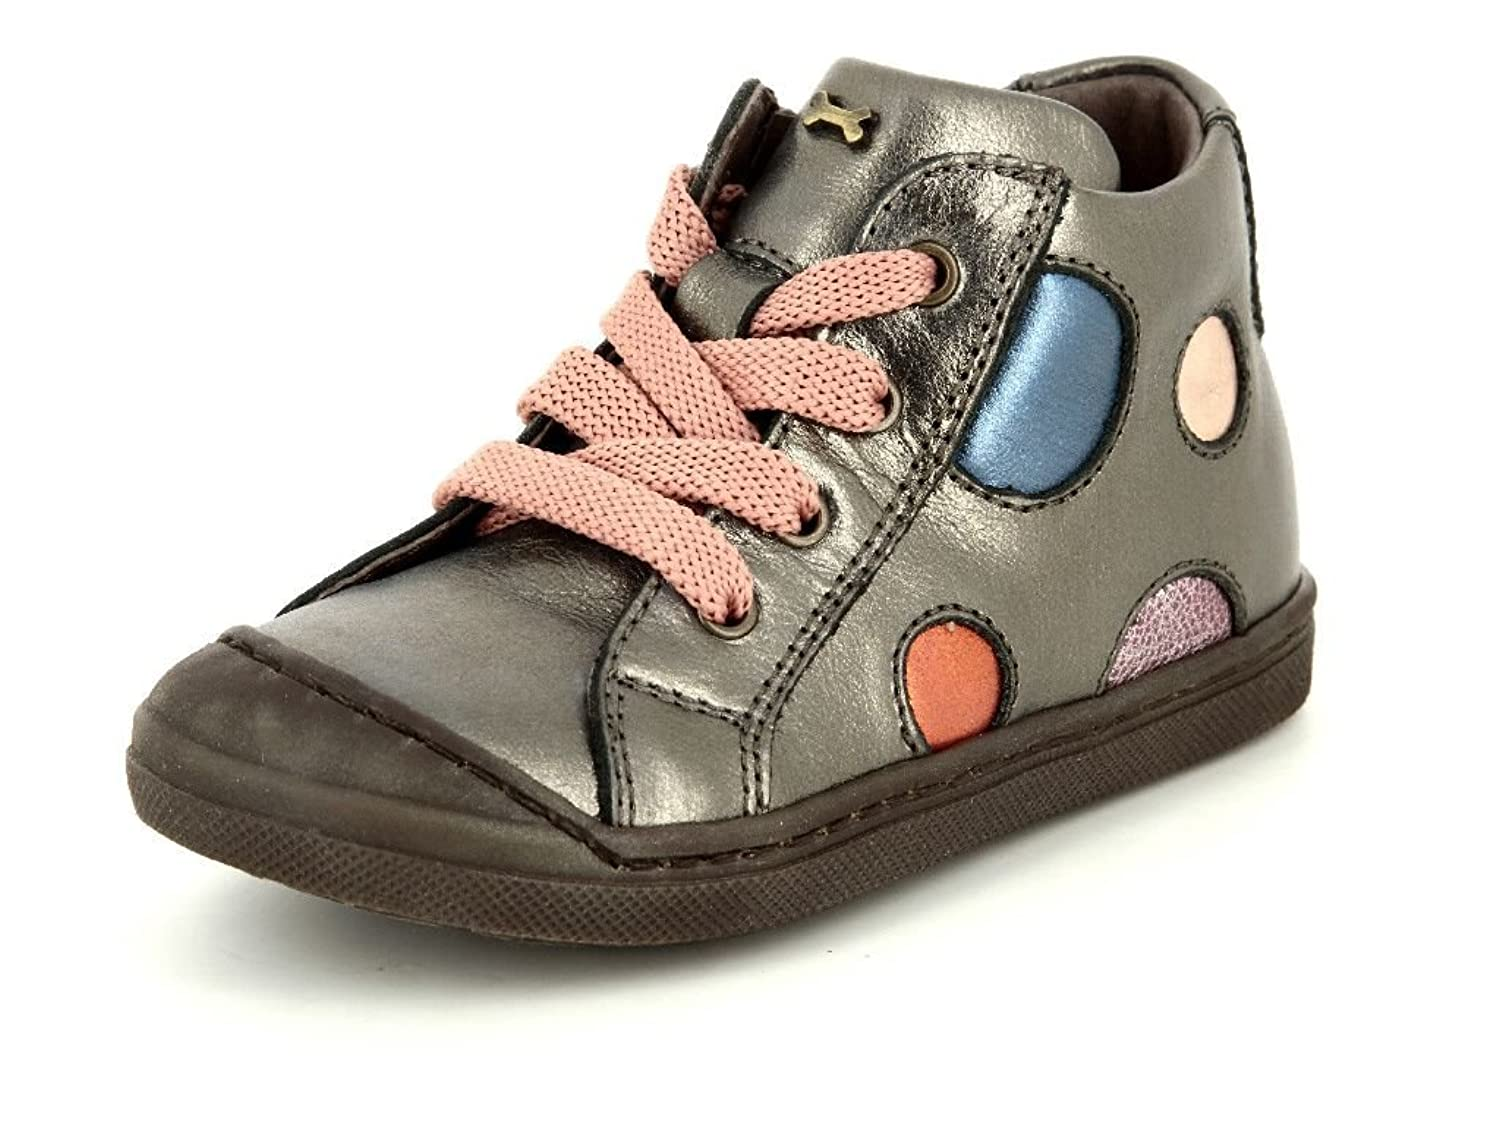 Stones and Bones Mida 3160 bronze Kinder Boot in Mittel online kaufen